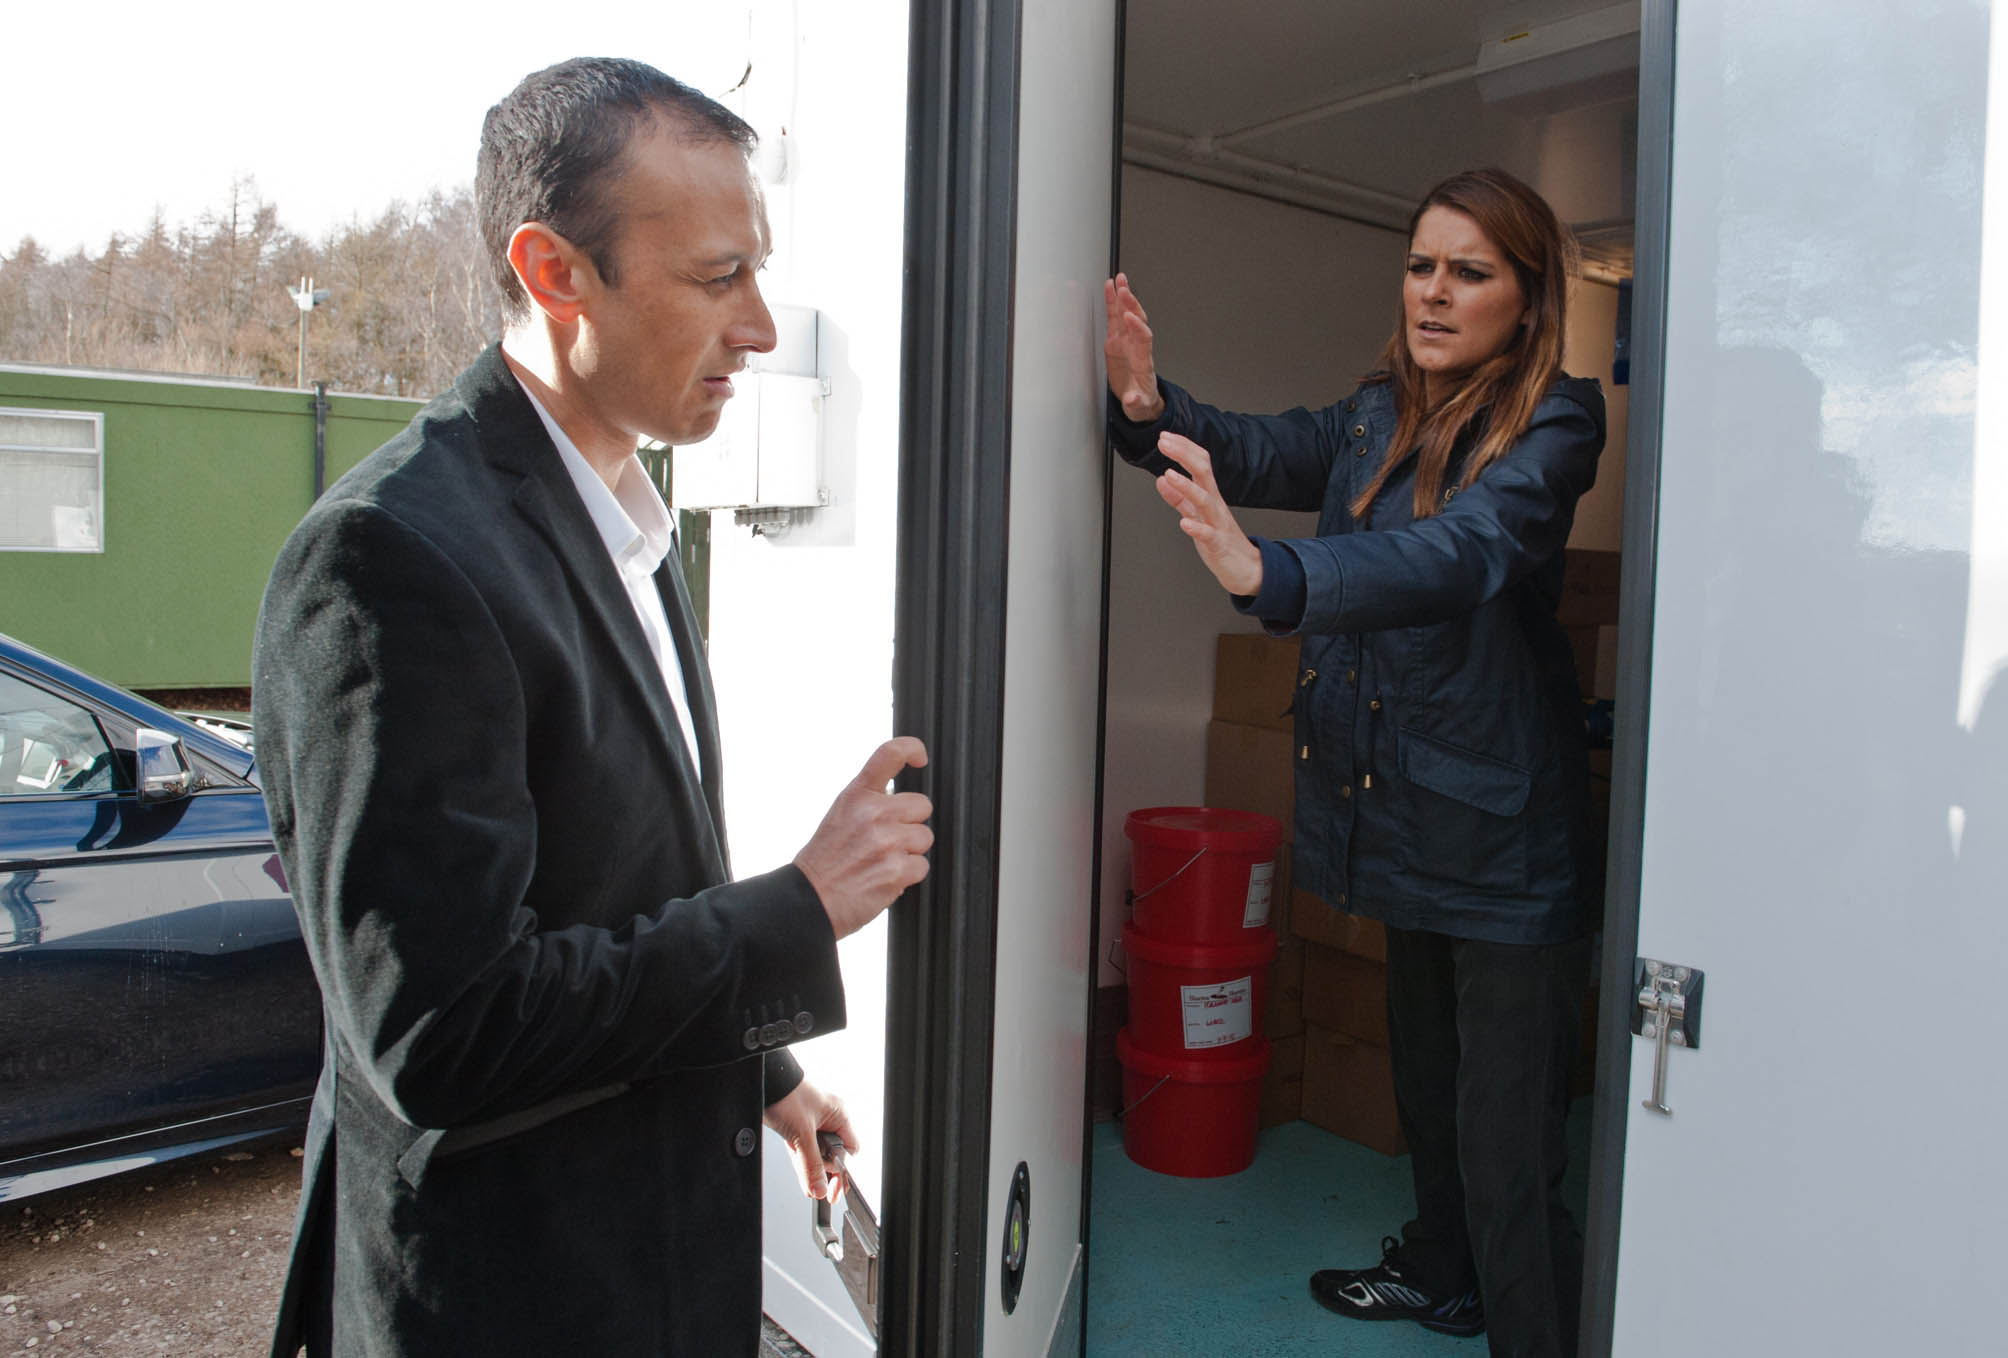 FROM ITV STRICT EMBARGO -TV Listings Magazines & websites Tuesday 12 May 2015, Newspapers Saturday 16 May 2015  Emmerdale - Ep 7185  Monday 18 May 2015   Jai Sharma [CHRIS BISSON] forces Rachel Breckle [GEMMA OATEN]to go to the factory with him, saying there's a problem but Sam is wary. At the factory, Rachel  tells Jai she wants full control of Archie's life, lying she's prepared to sacrifice Sam if necessary. But a composed Jai takes Rachel by surprise and soon she is trapped, alone and screaming… Picture contact: david.crook@itv.com on 0161 952 6214 Photographer - Amy Brammall This photograph is (C) ITV Plc and can only be reproduced for editorial purposes directly in connection with the programme or event mentioned above, or ITV plc. Once made available by ITV plc Picture Desk, this photograph can be reproduced once only up until the transmission [TX] date and no reproduction fee will be charged. Any subsequent usage may incur a fee. This photograph must not be manipulated [excluding basic cropping] in a manner which alters the visual appearance of the person photographed deemed detrimental or inappropriate by ITV plc Picture Desk. This photograph must not be syndicated to any other company, publication or website, or permanently archived, without the express written permission of ITV Plc Picture Desk. Full Terms and conditions are available on the website www.itvpictures.com